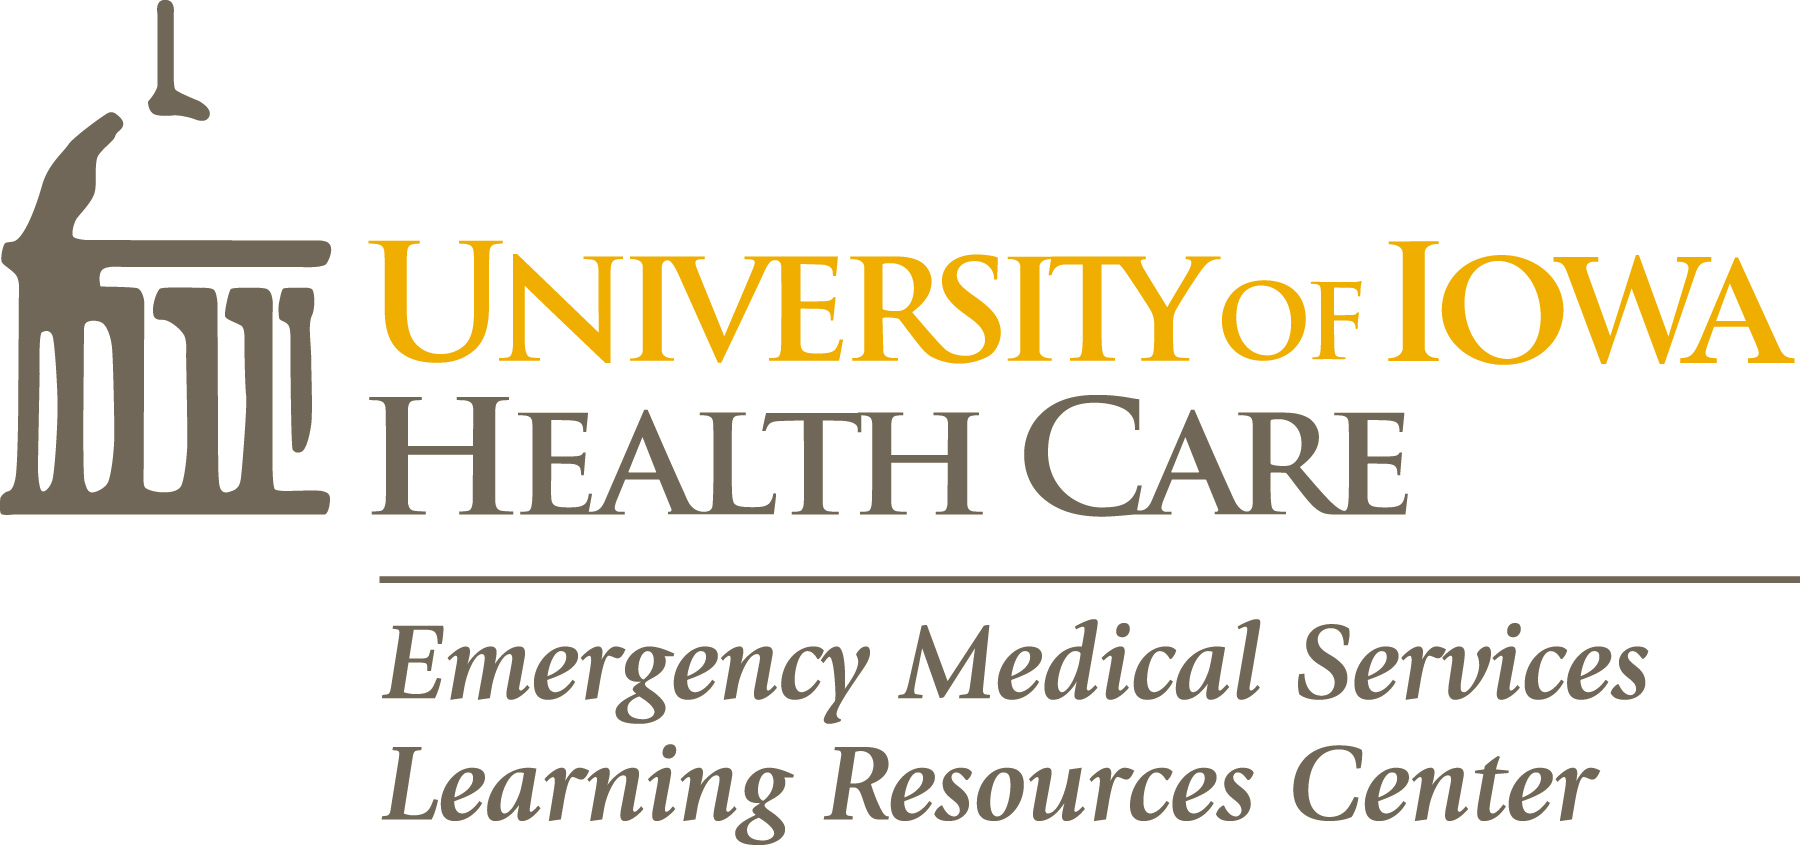 Emergency Nursing Pediatric Course (ENPC) Provider February 27 & 28, 2018